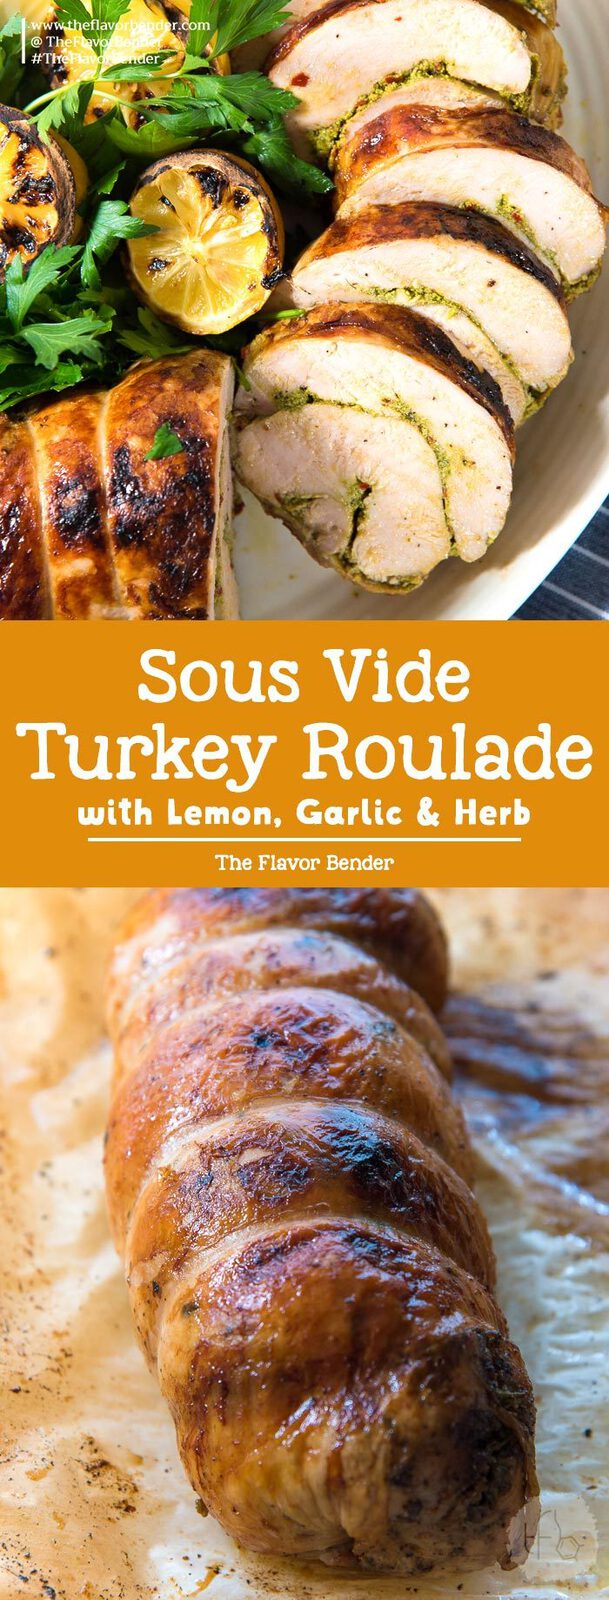 Sous Vide Turkey Roulade is cooked slow and low in the sous vide to guaranteethe most perfectly tender, juicy, succulent results! Perfect for Thanksgiving and Christmas! #ThanksgivingRecipes #TurkeyRecipes #TurkeyRoast #SousVideRecipes